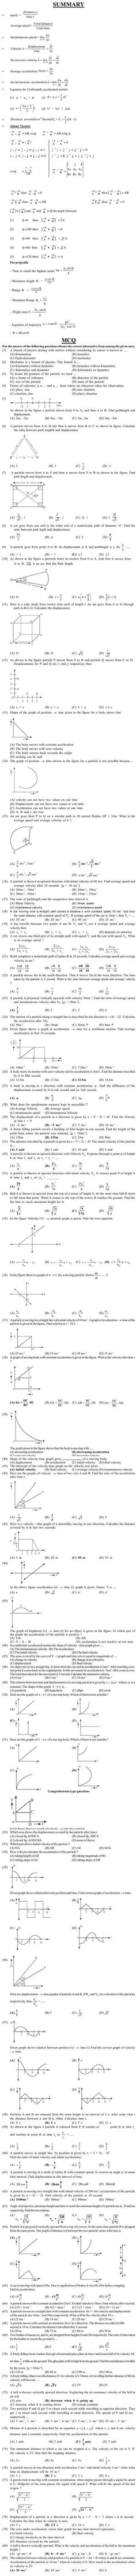 Physics Question Bank for Entrance Exam   Kinematics   AglaSem